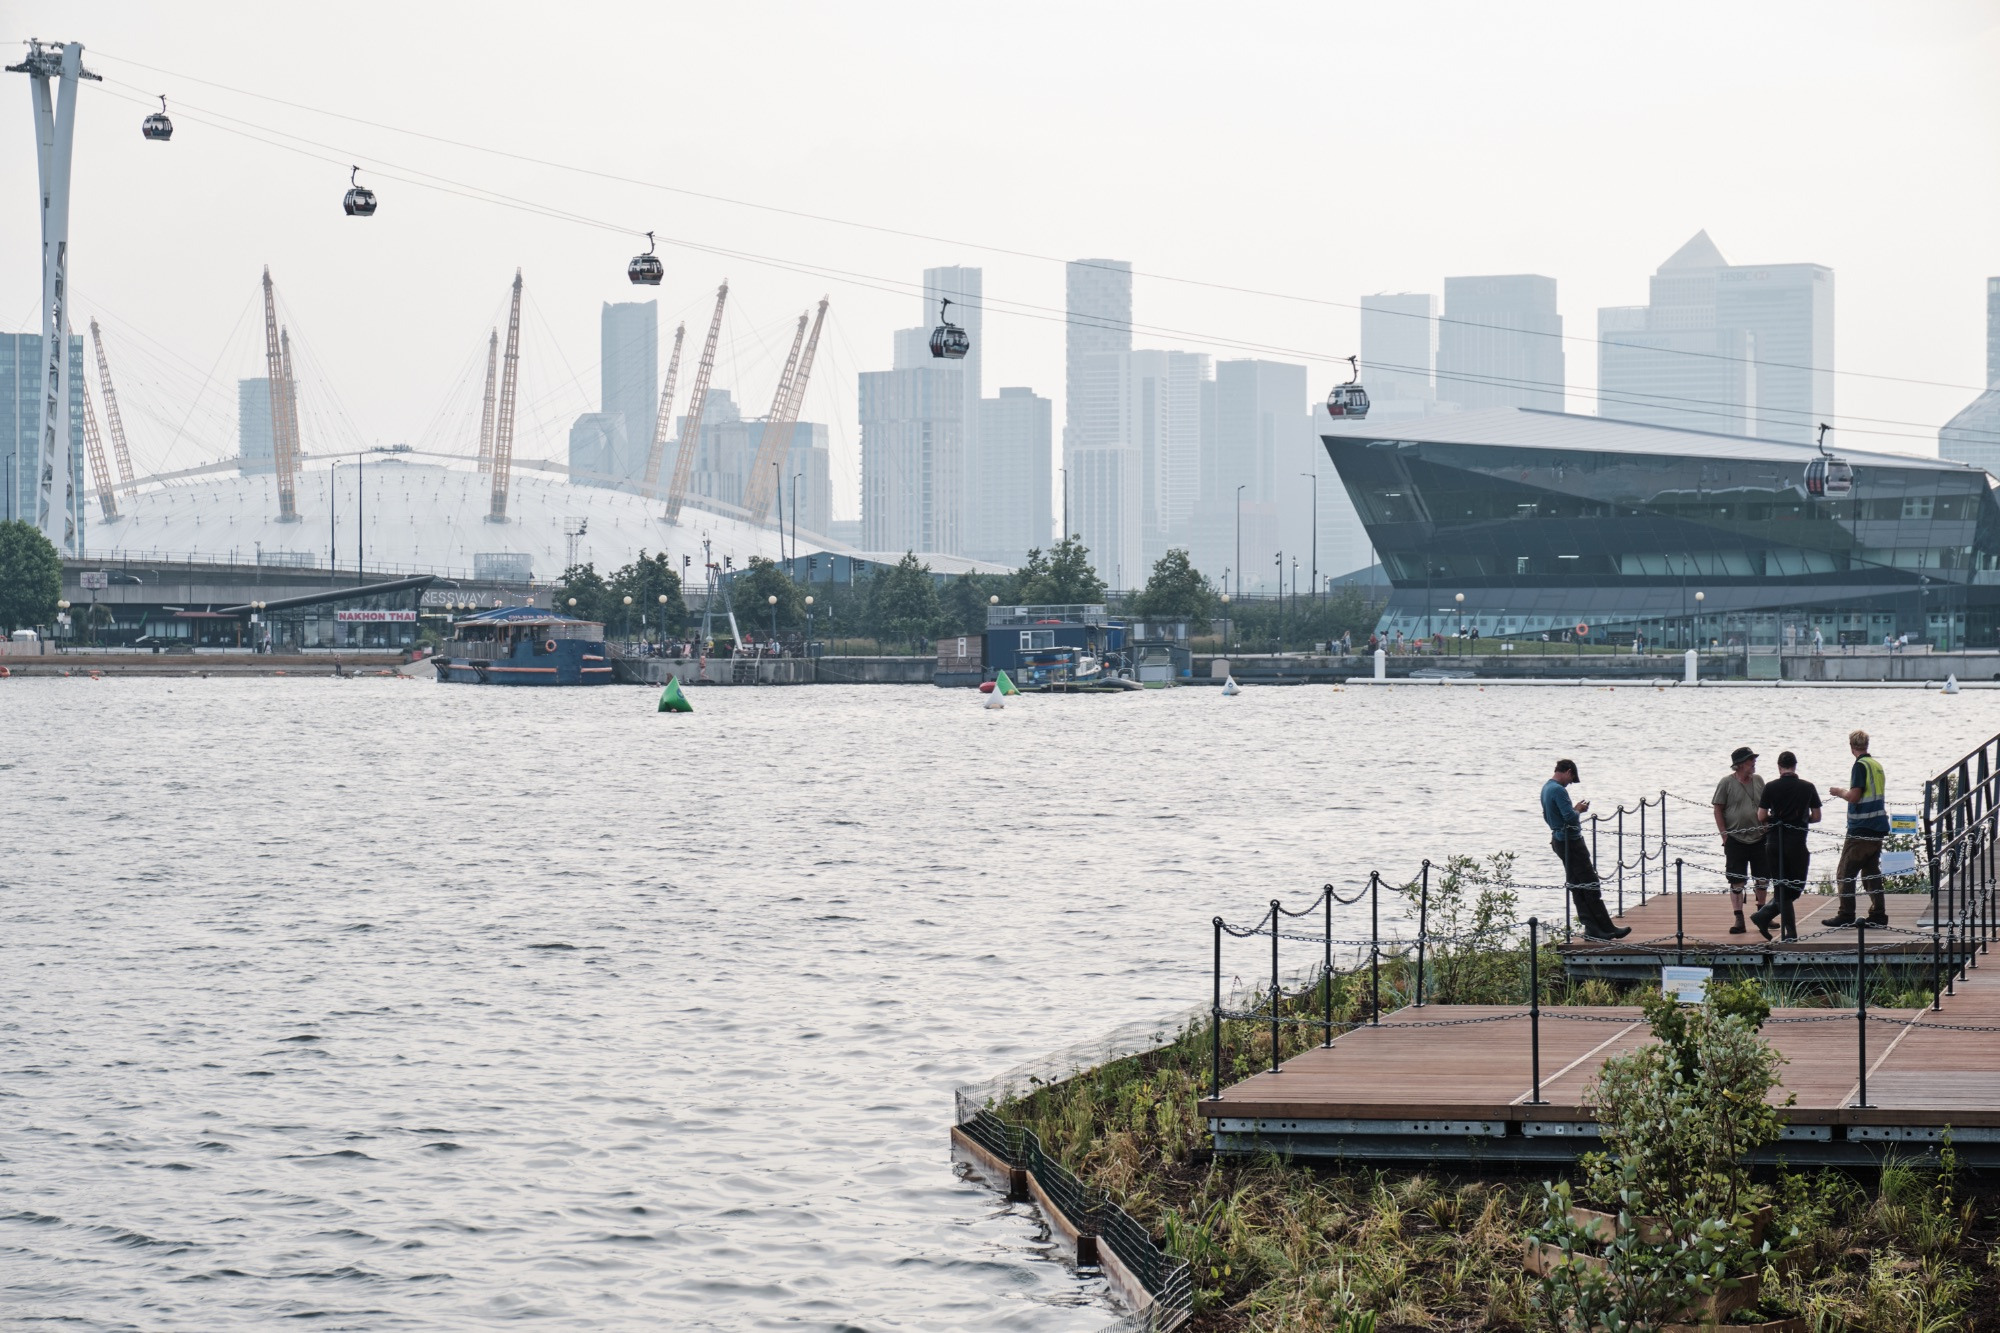 View of the Royal Docks floating garden with the Millennium dome in the background